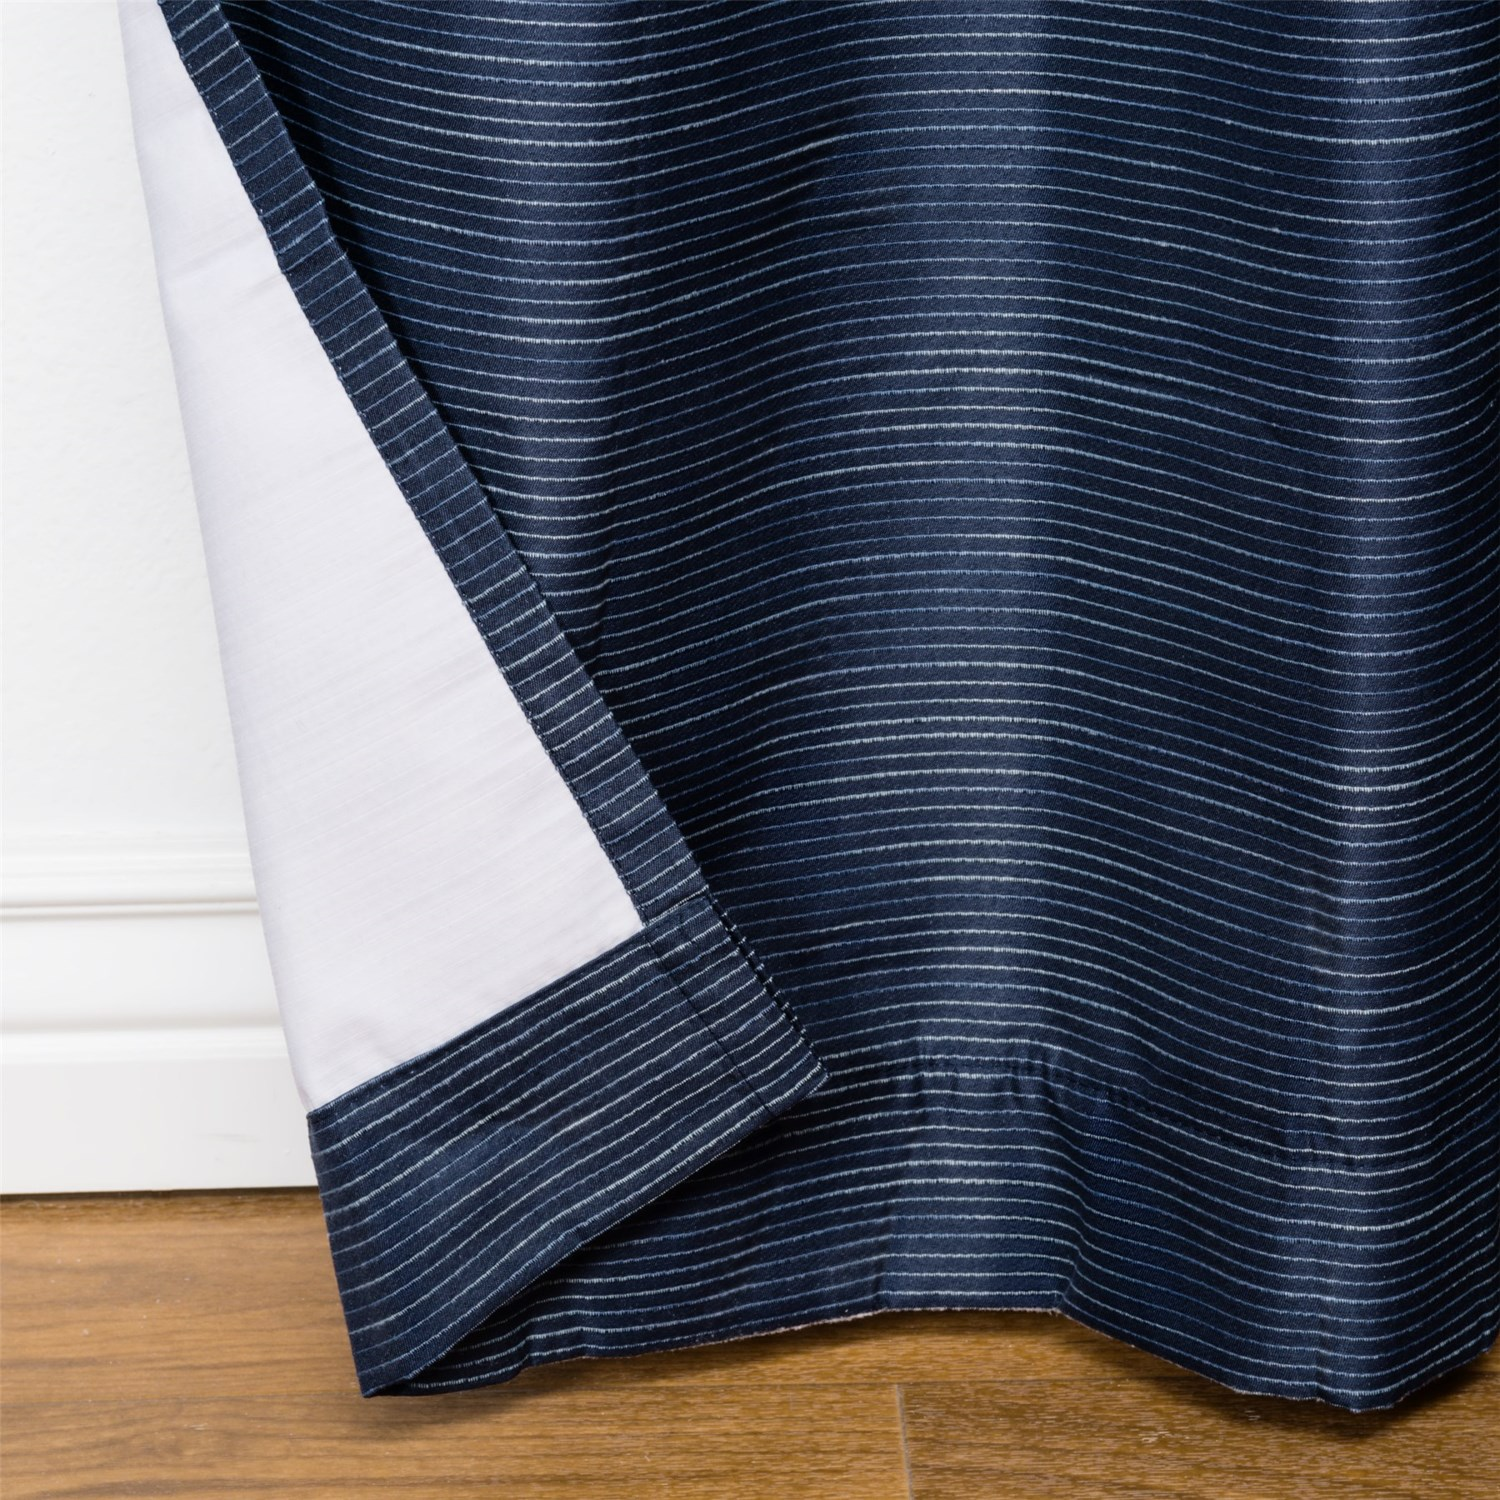 United Curtain Co Brighton Curtains 108x84 Grommet Top 8251g Save 60